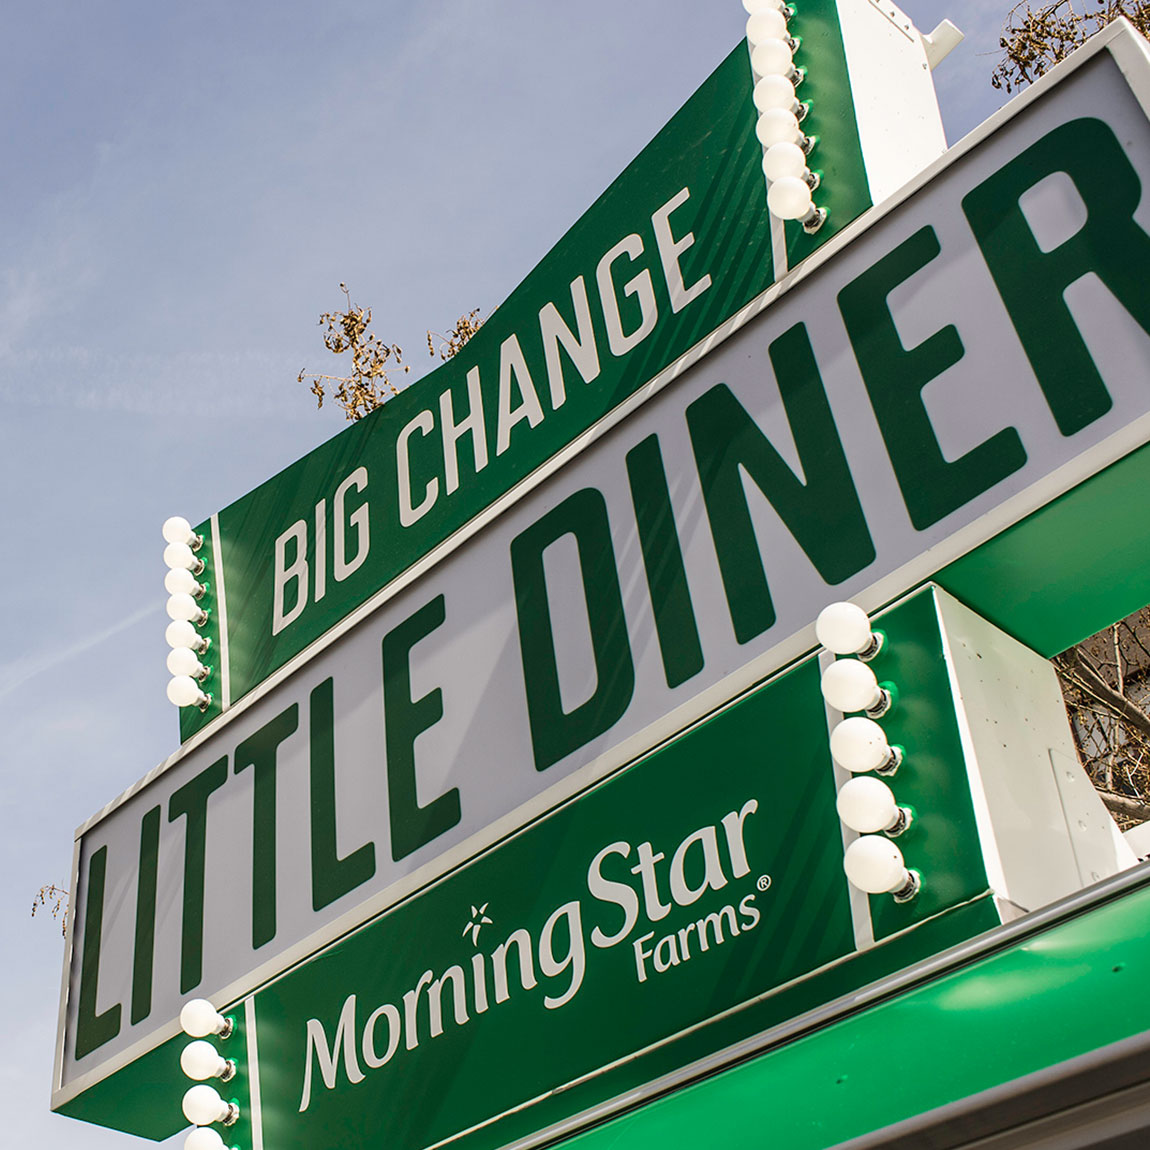 Morningstar littlediner project thumb 2x